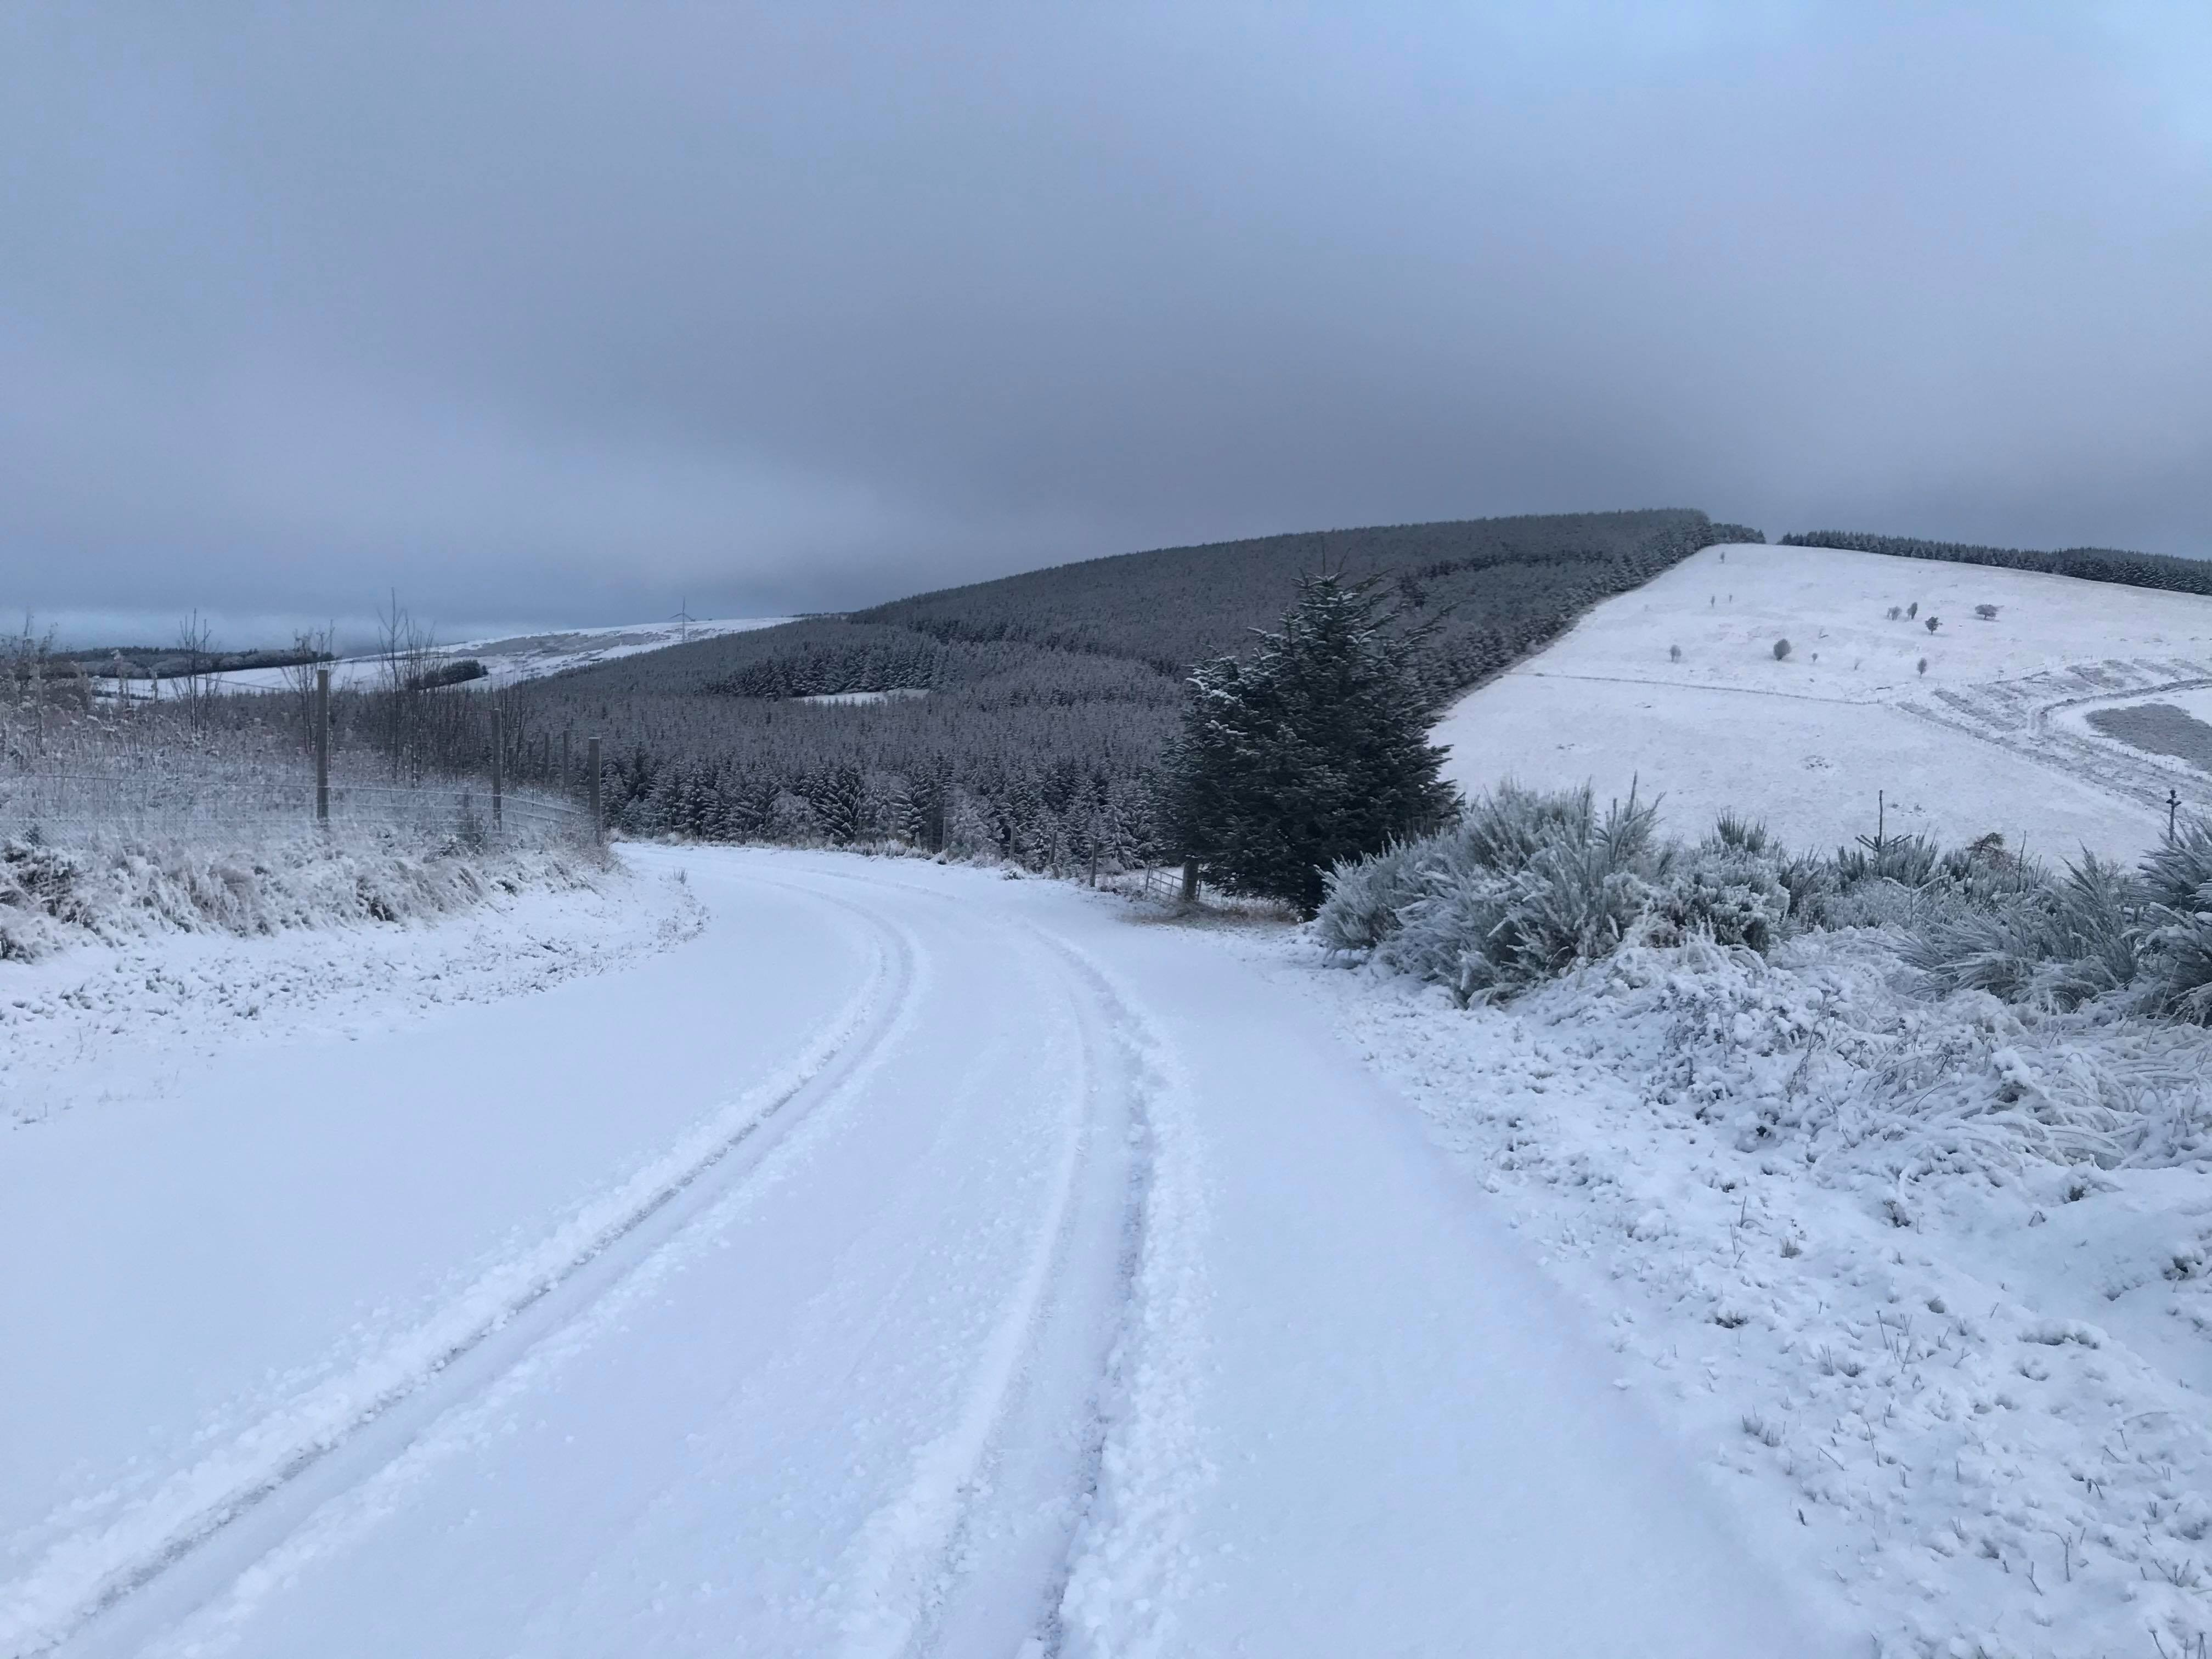 The wintry scene at Cushnie, near Alford, Aberdeenshire, this morning. Picture by Julia Sidell